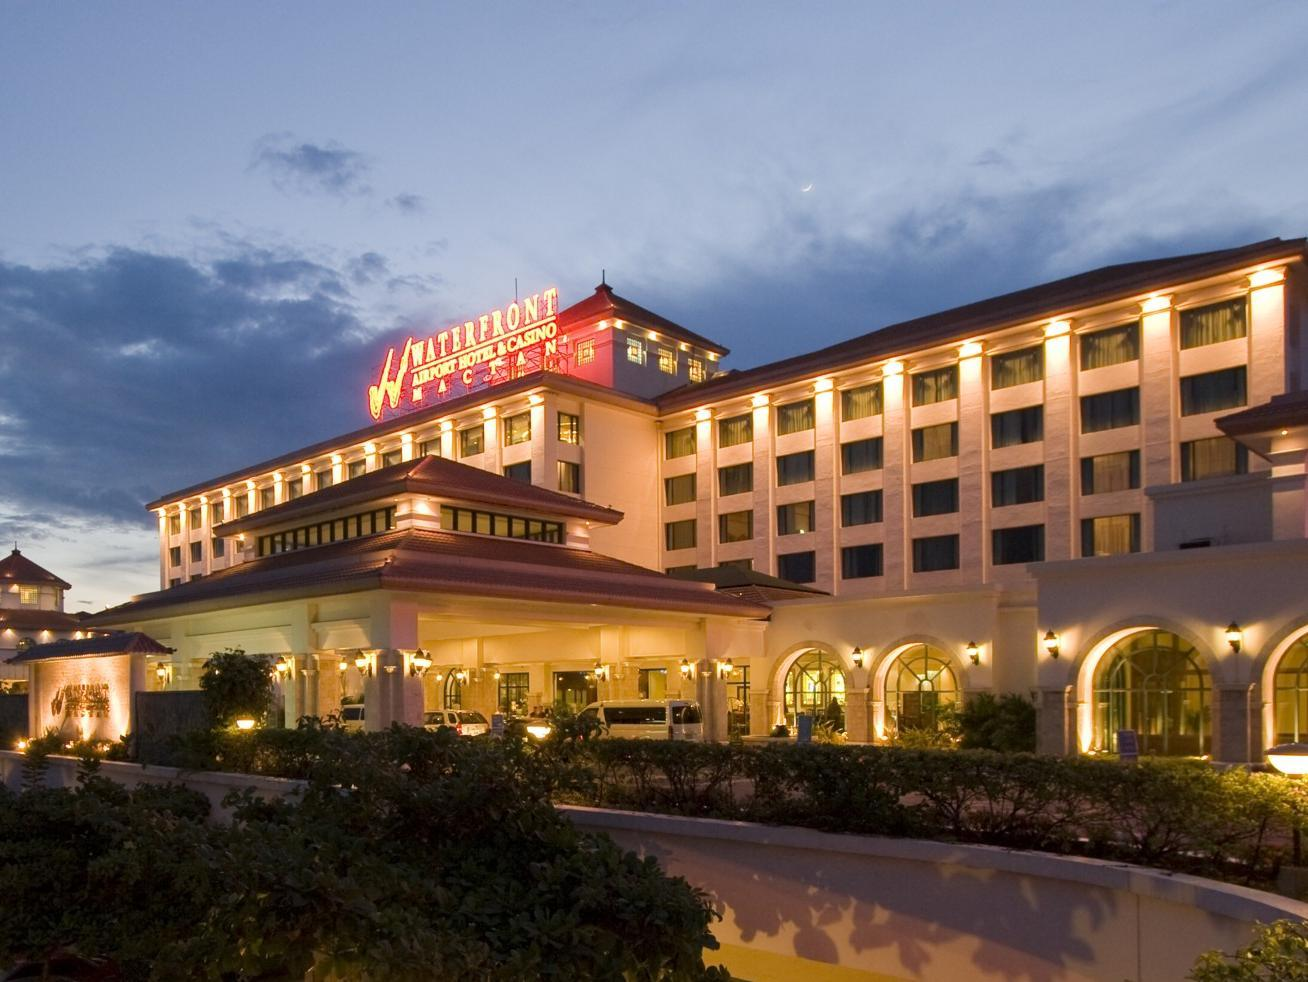 Waterfront Airport Hotel and Casino Cebu - Hotellet udefra